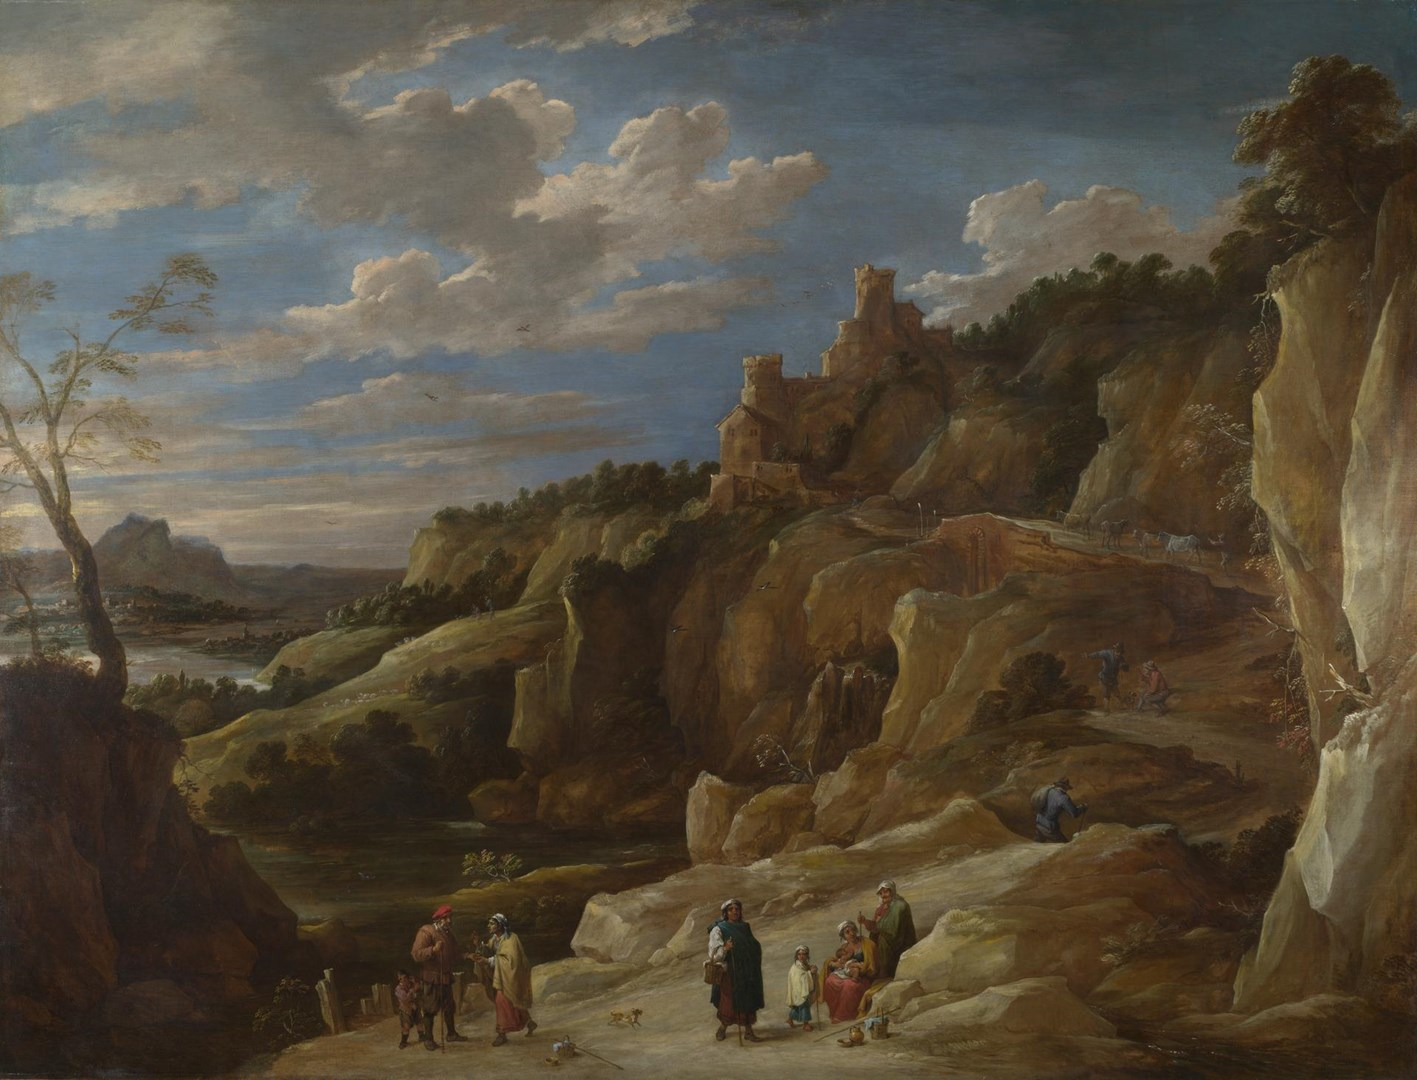 A Gipsy Fortune Teller in a Hilly Landscape by Probably by David Teniers the Younger